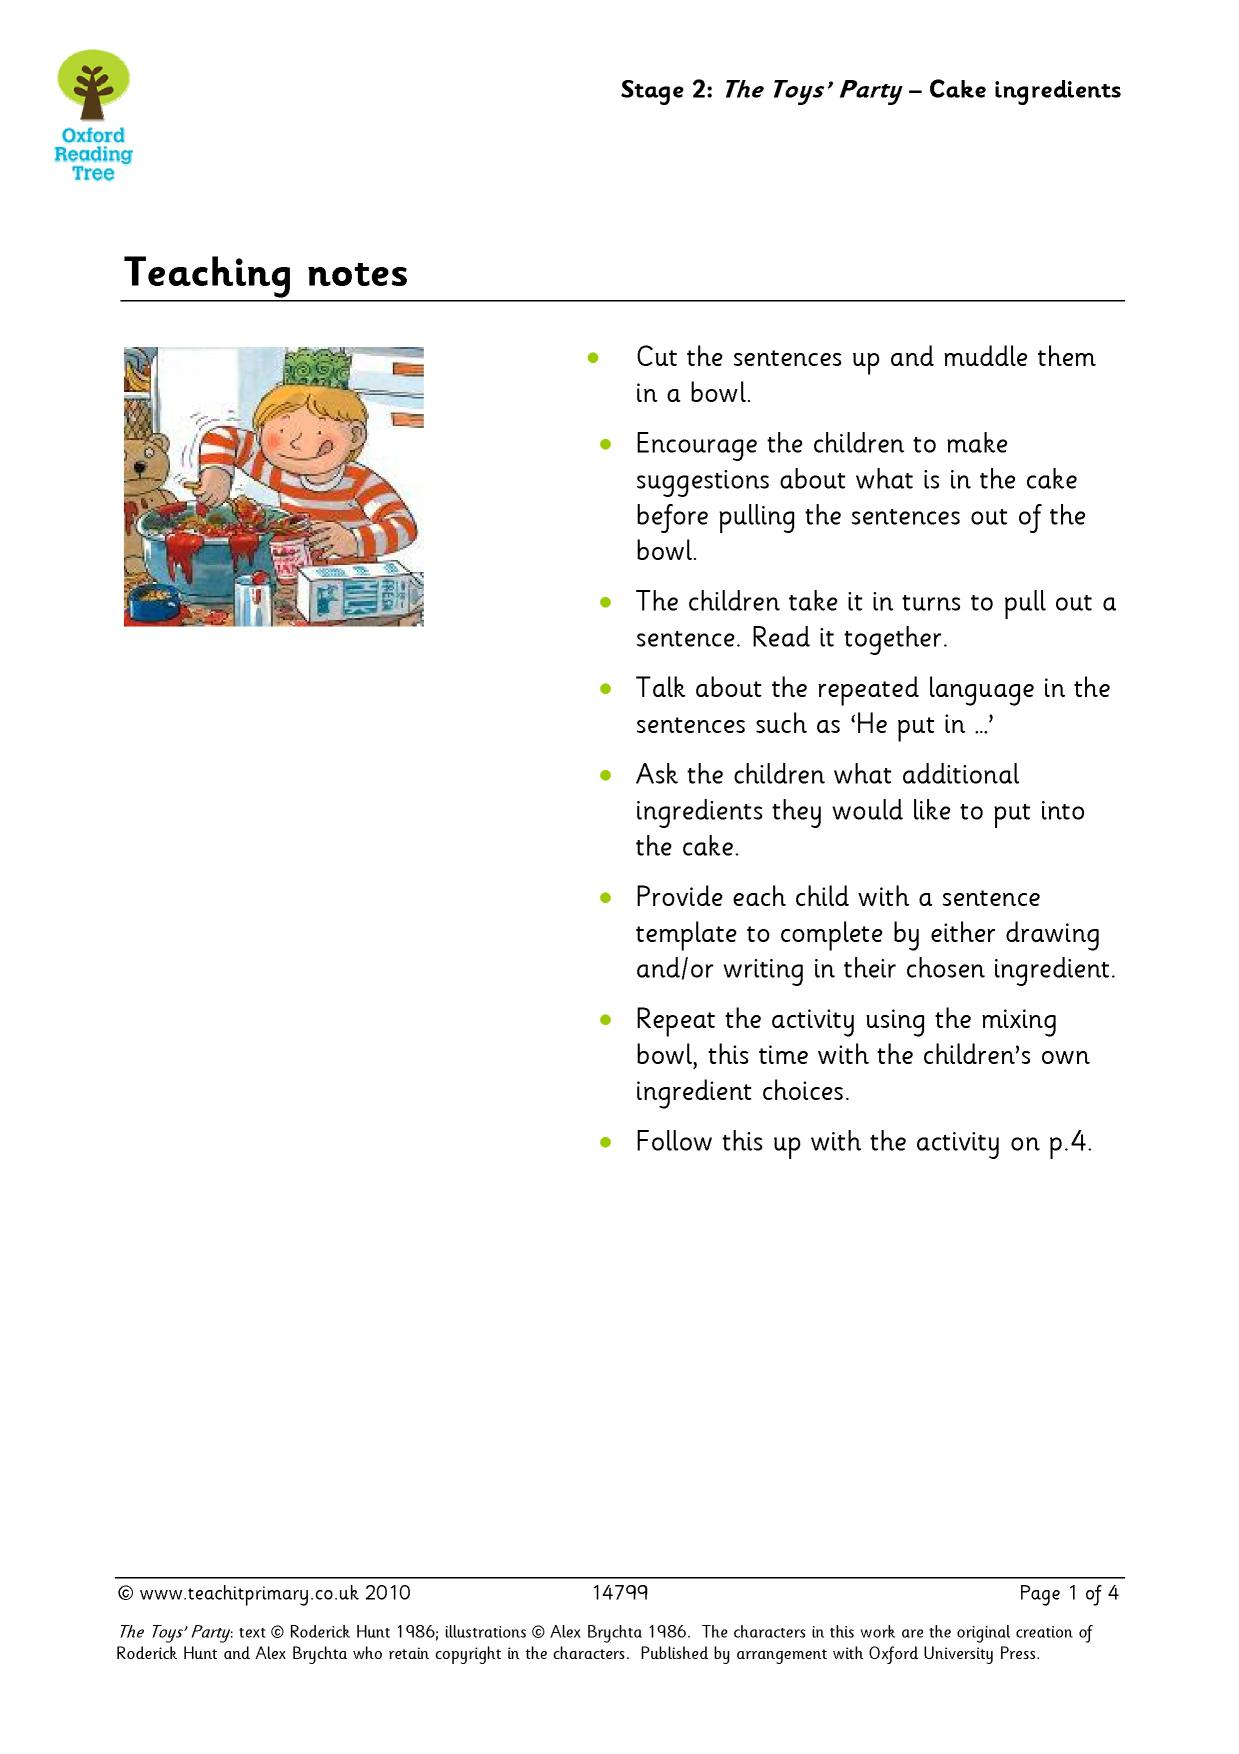 Oxford Reading Tree Free Sample Resources